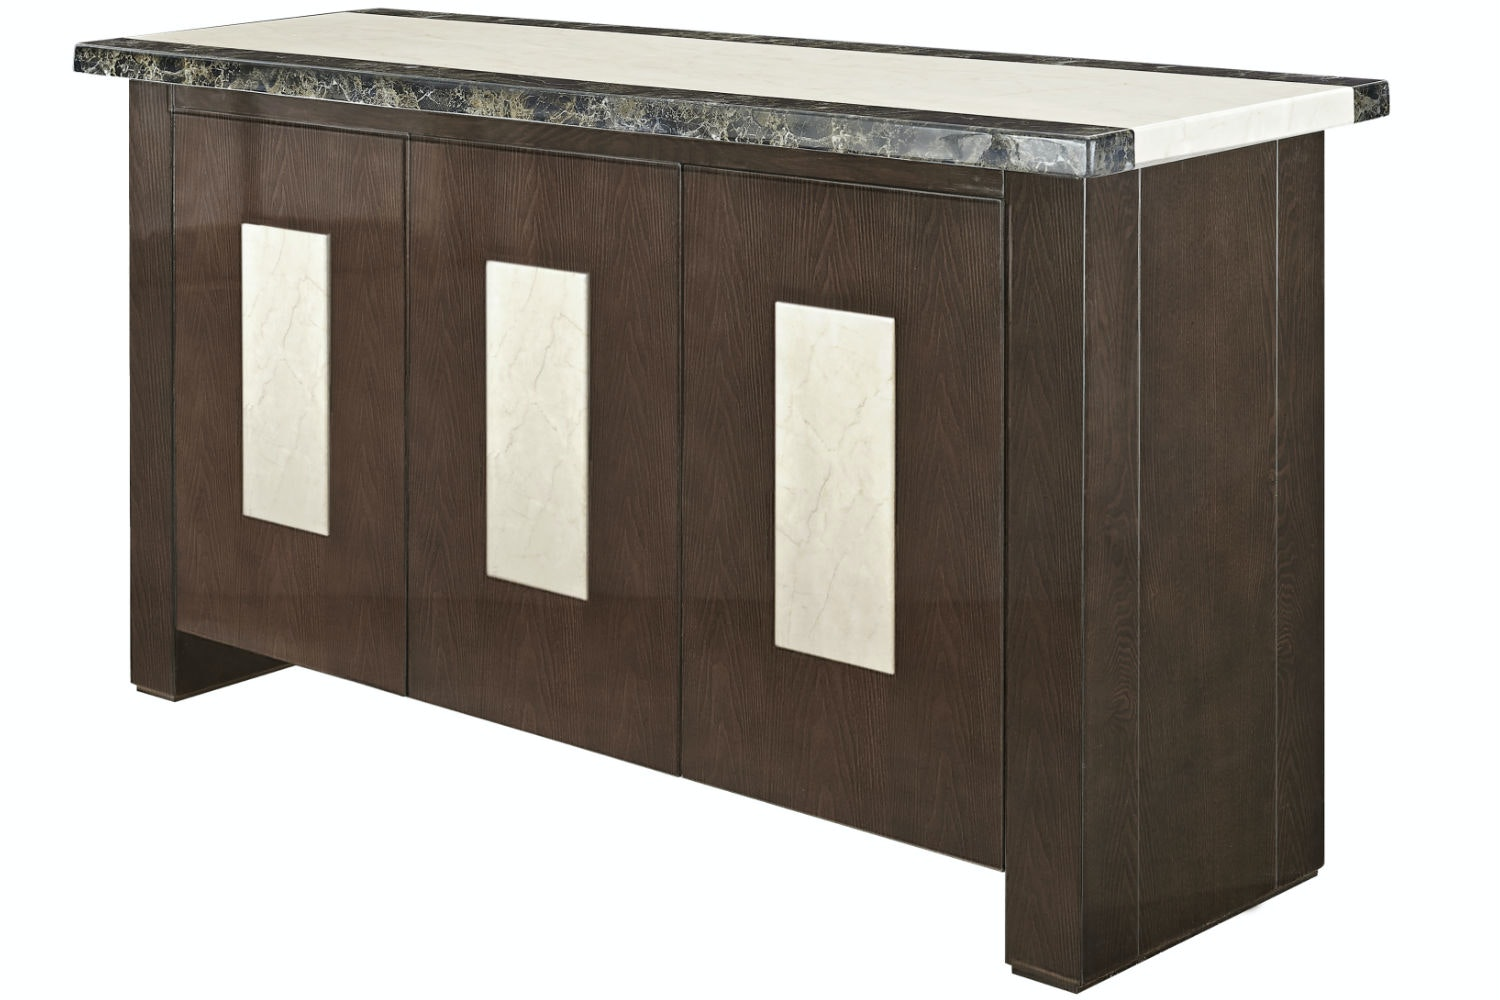 Poitier Sideboard | 3 Door